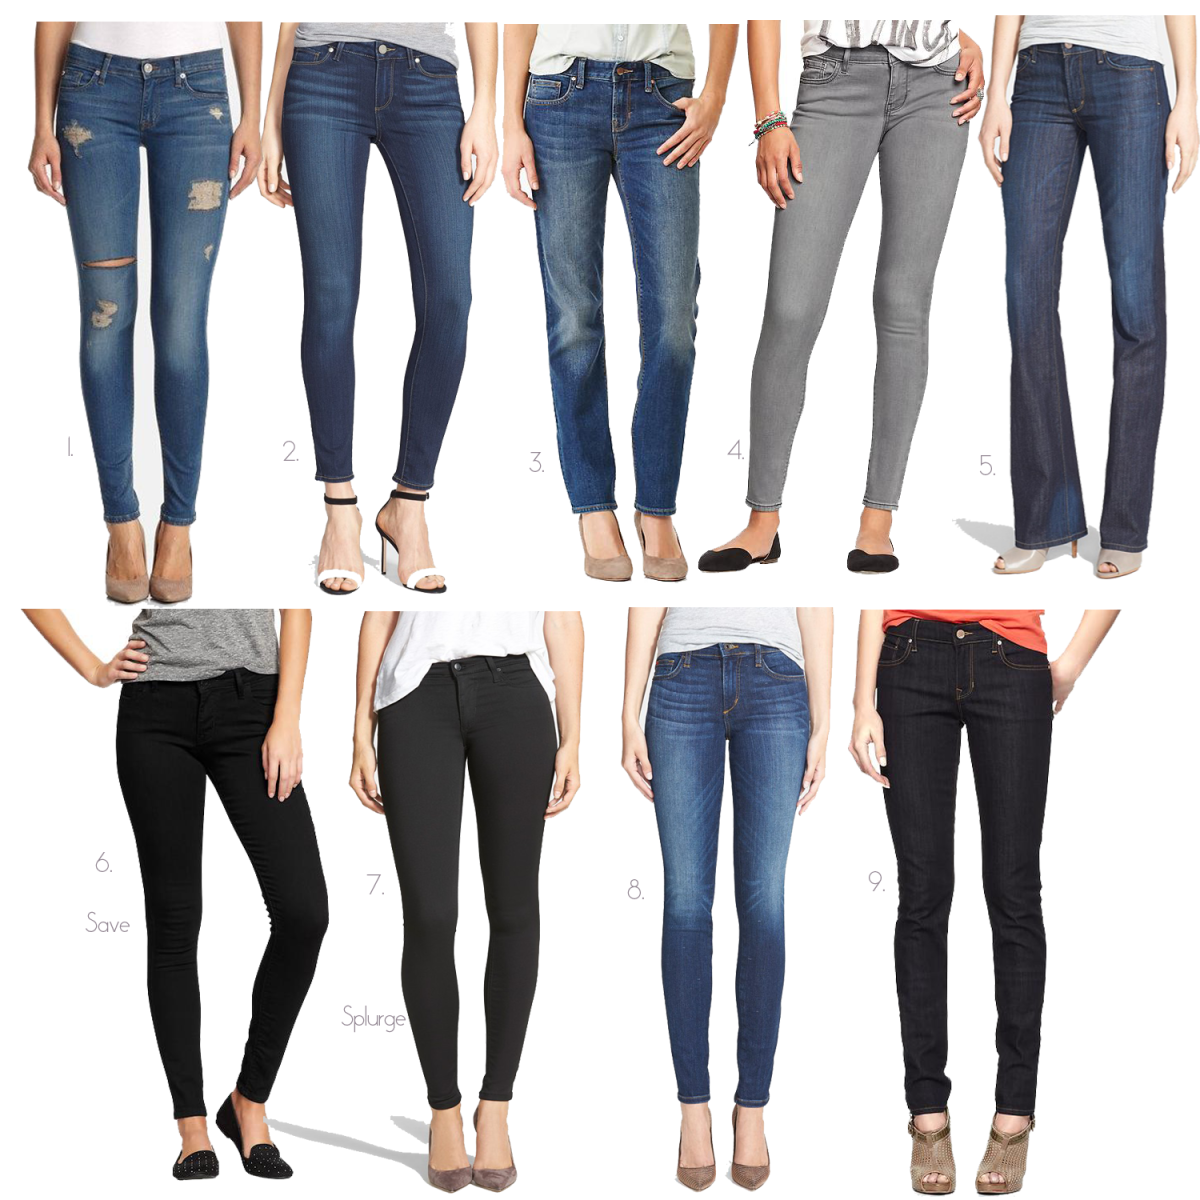 Monday Must Haves: Finding the Perfect Pair of Jeans